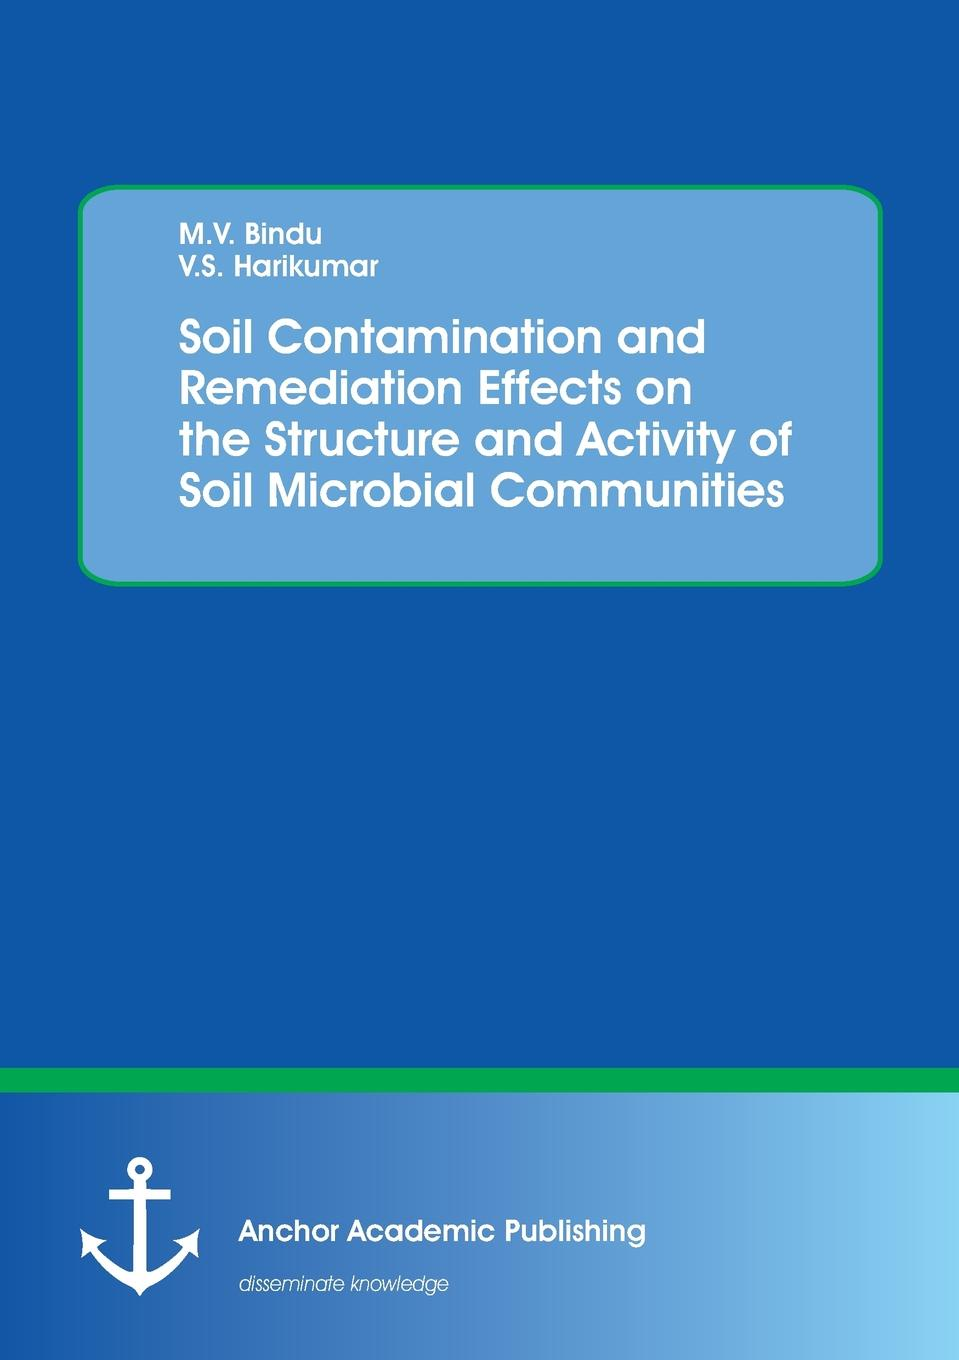 M.V. Bindu, V.S. Harikumar Soil Contamination and Remediation Effects on the Structure and Activity of Soil Microbial Communities impact of urbanization and industrialization